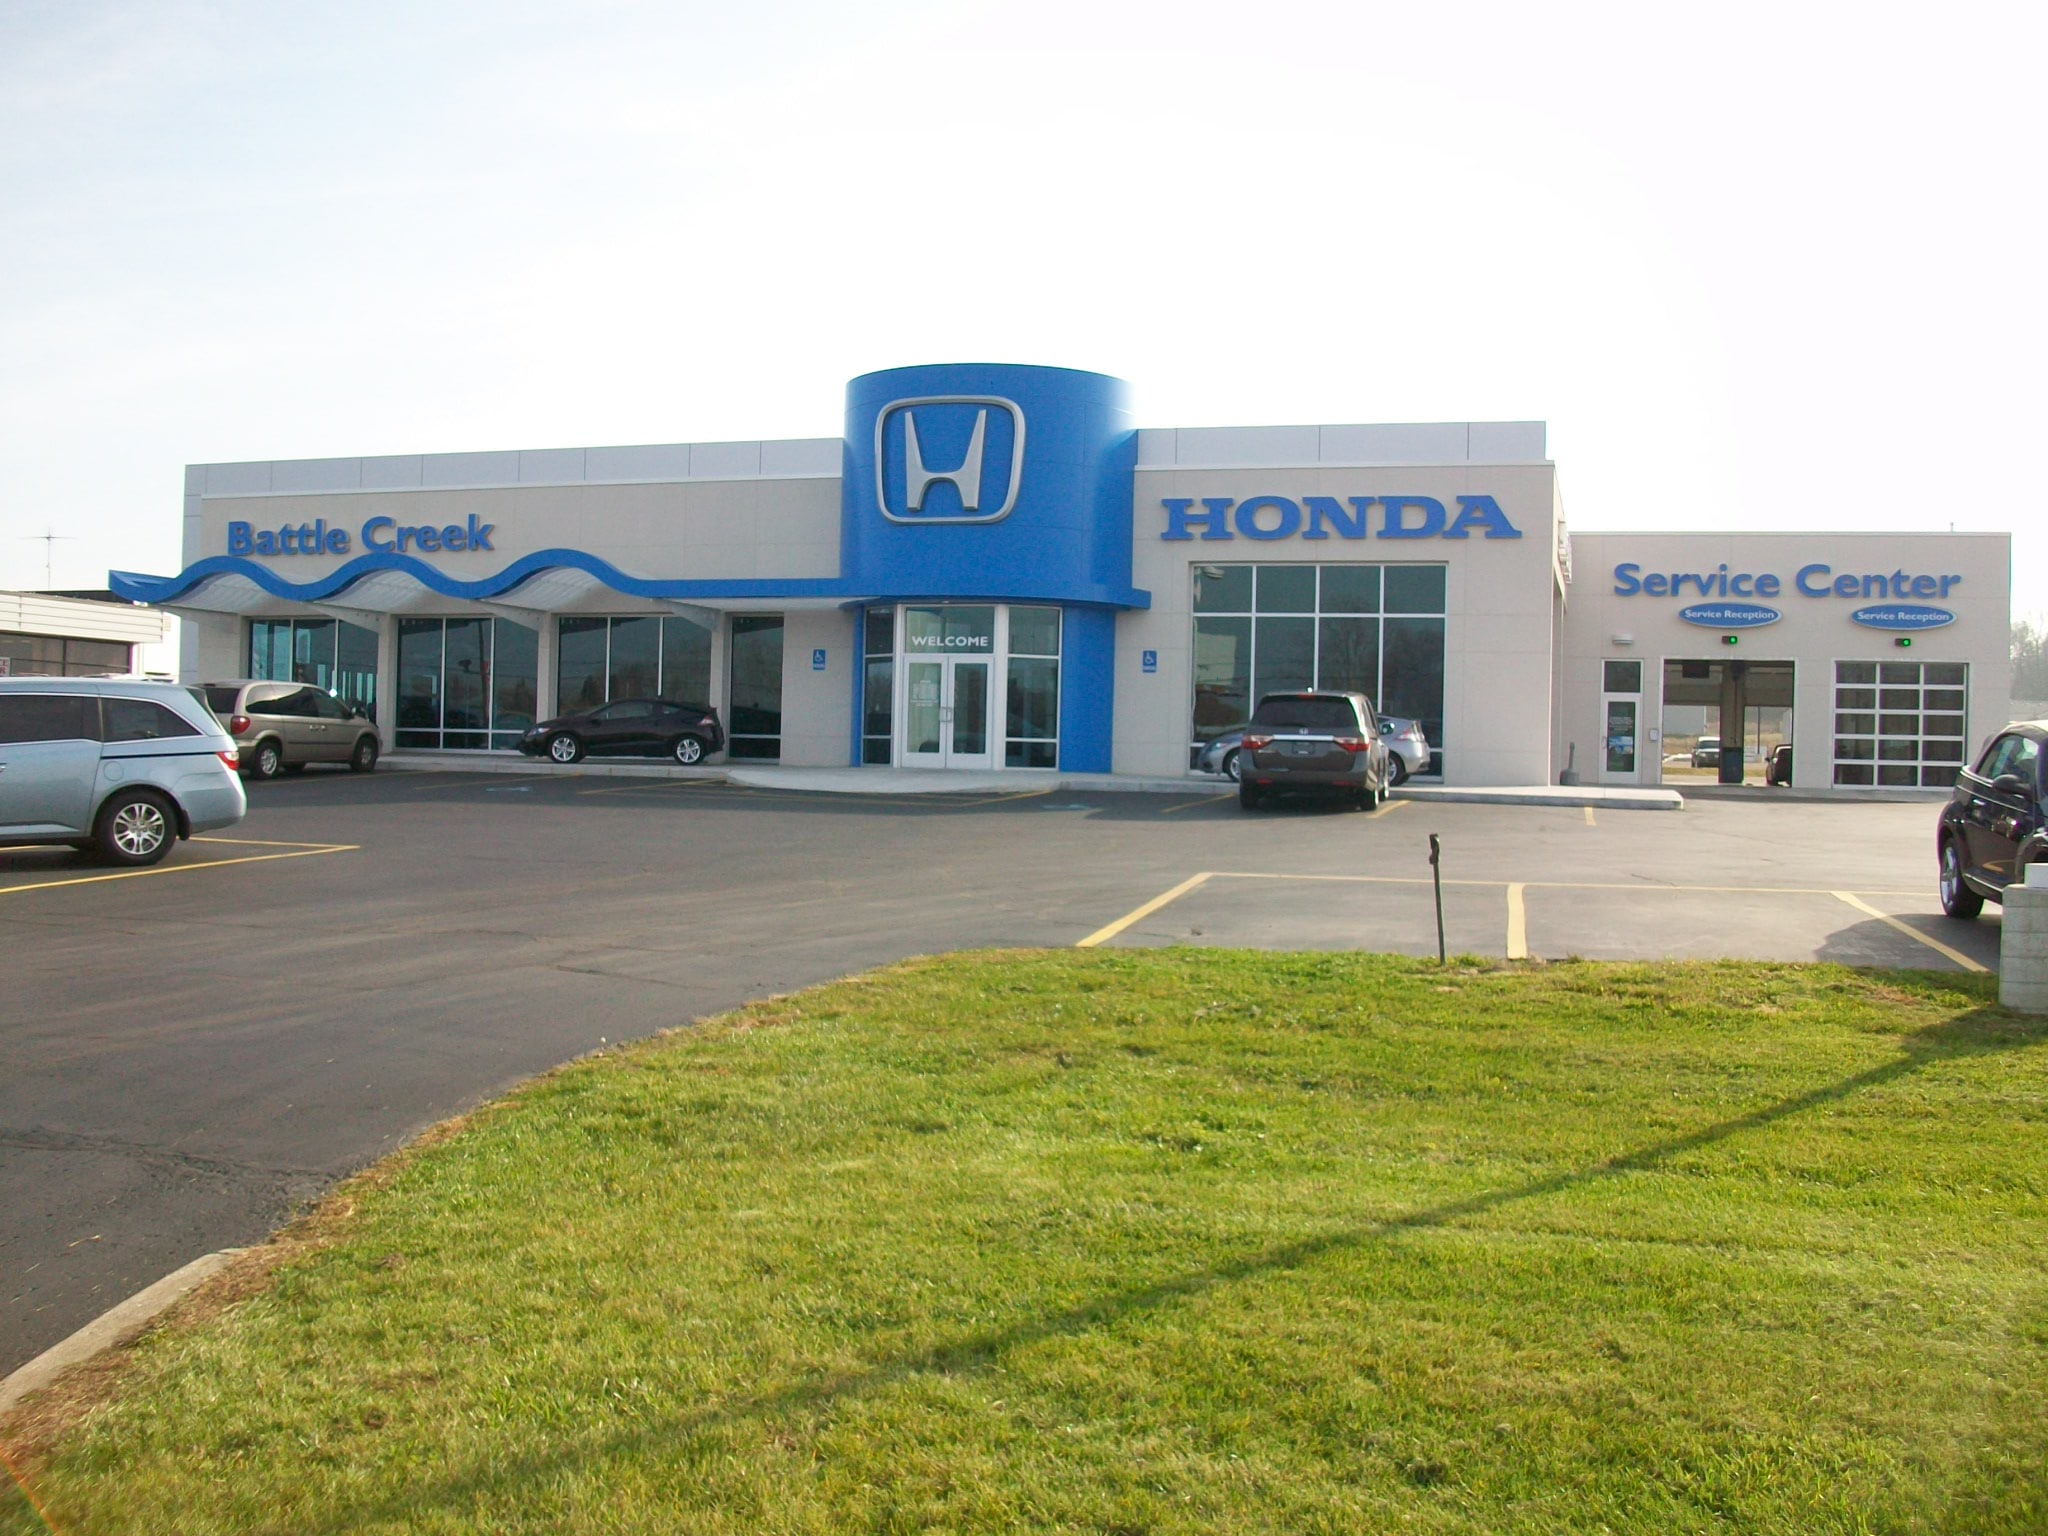 battle creek honda new honda dealership in battle creek